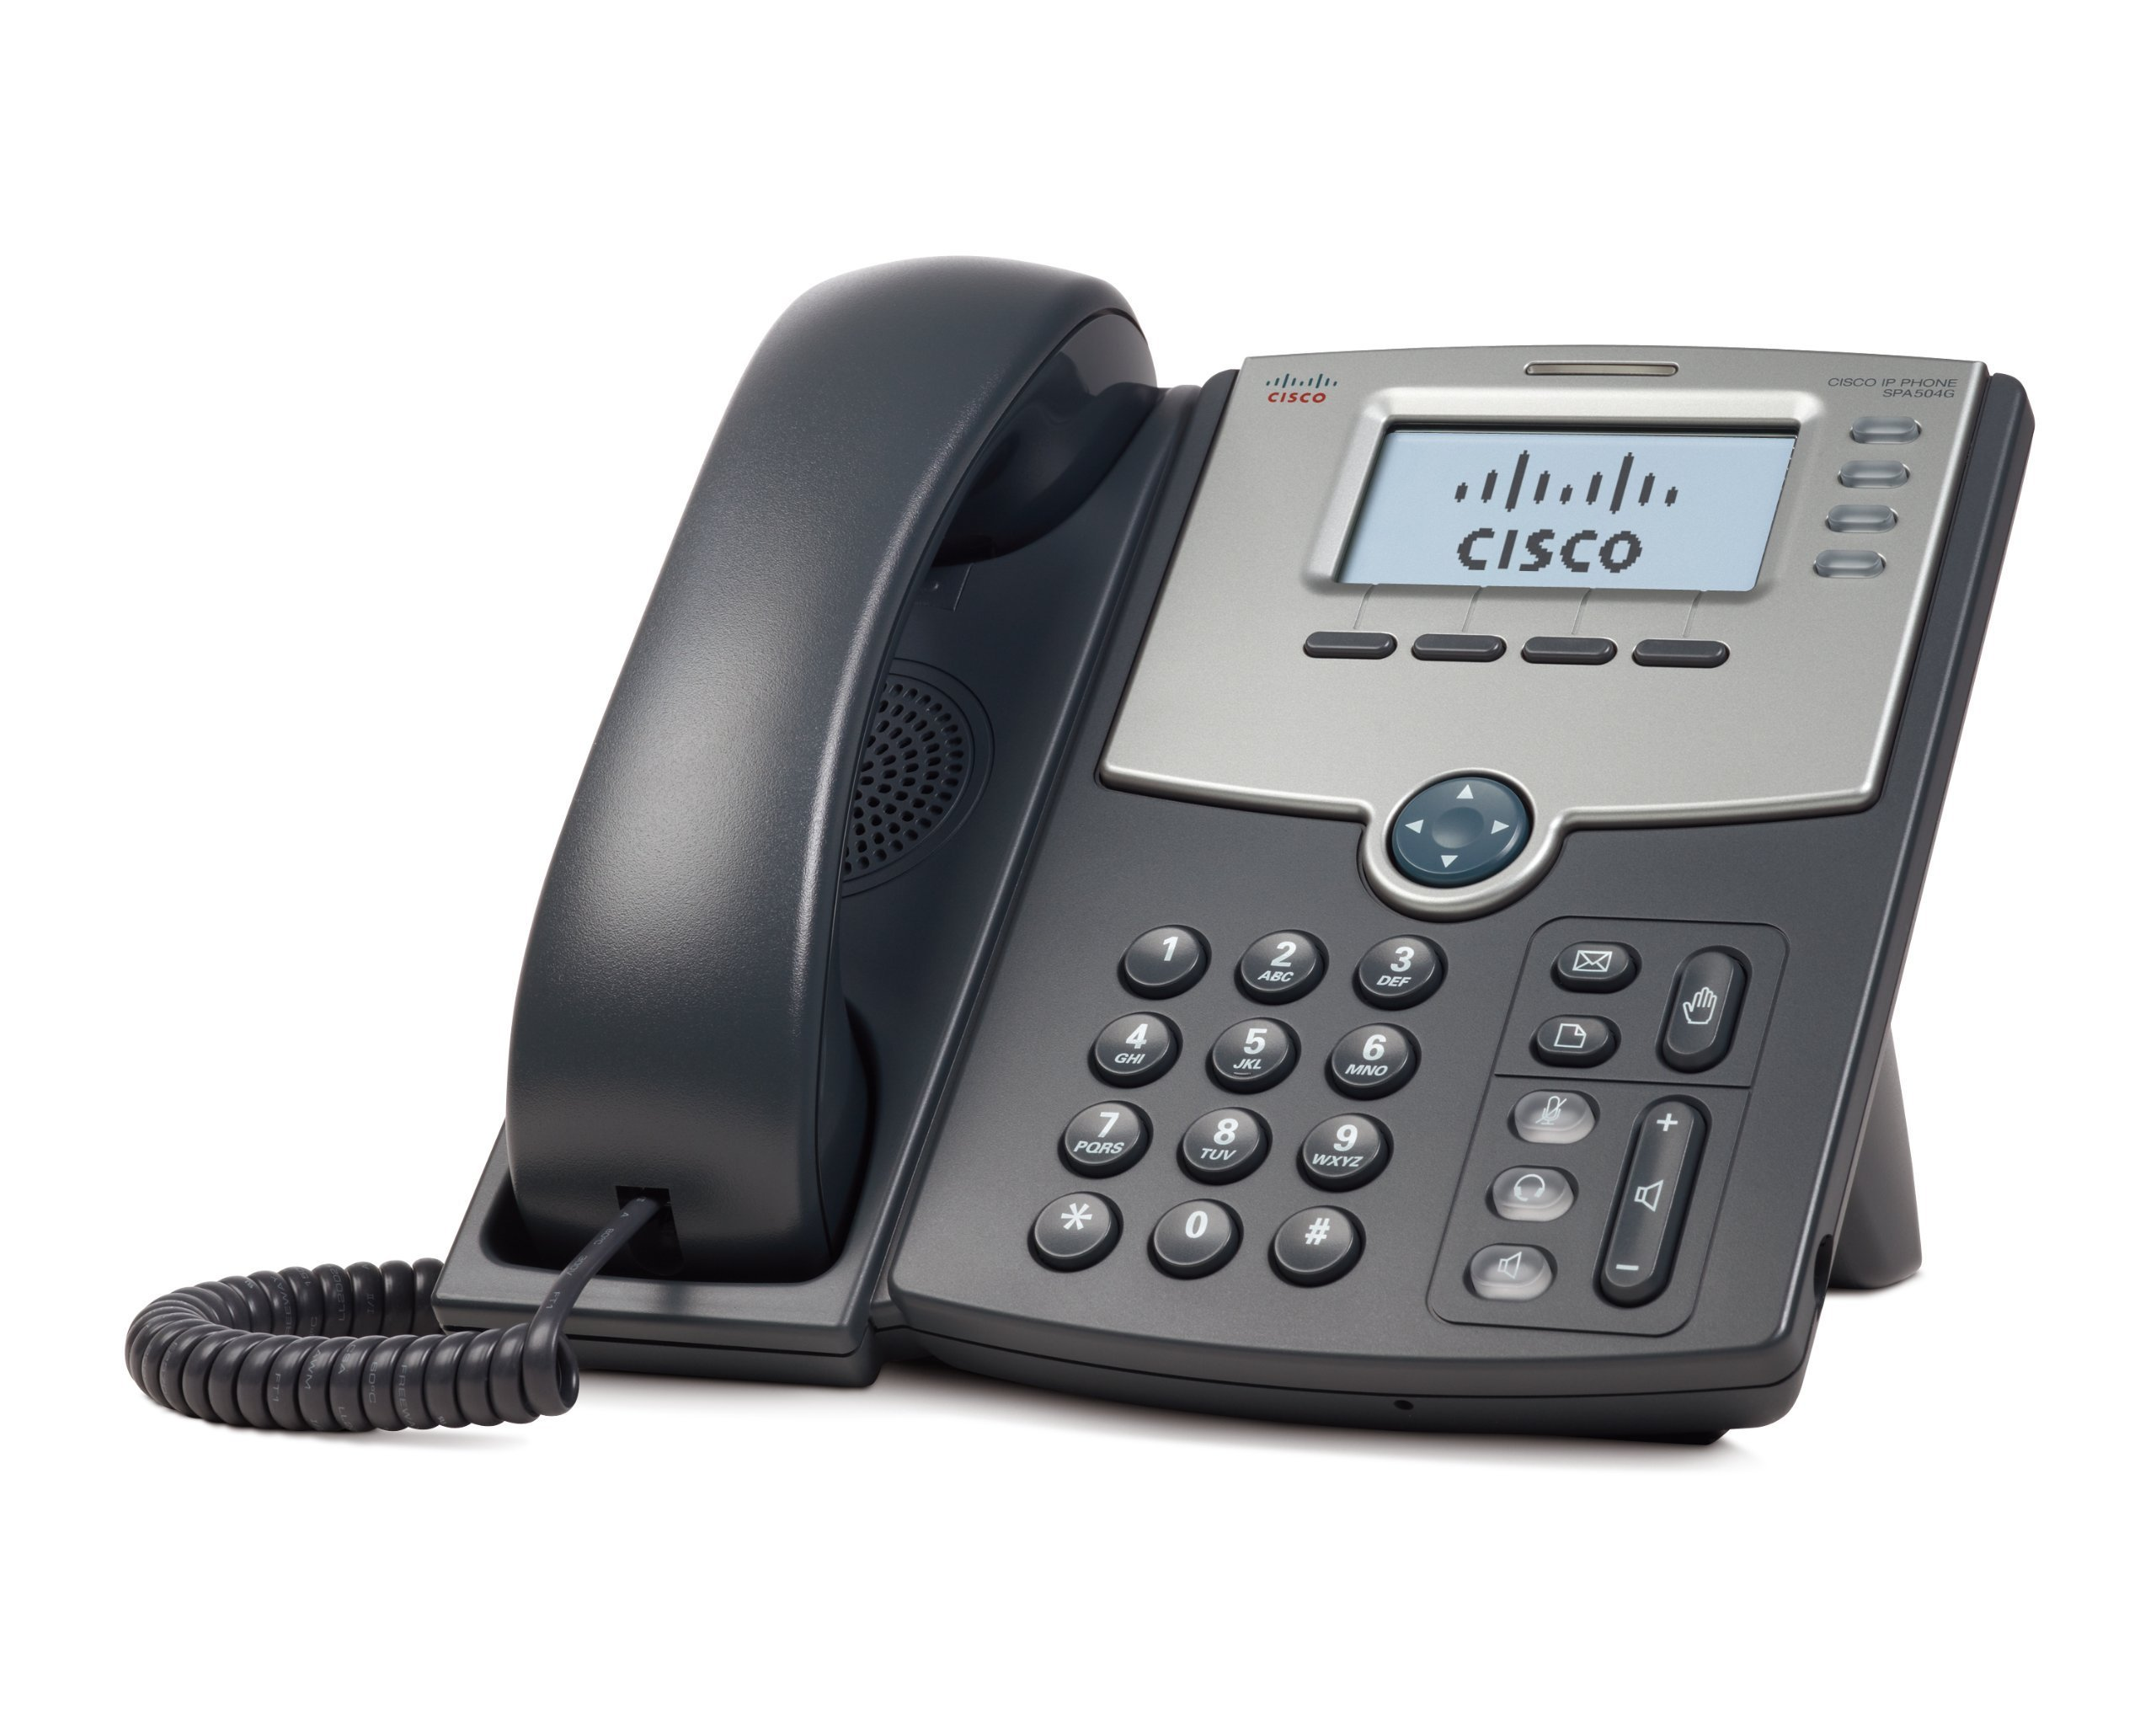 Cisco SPA504G 4-Line IP Phone with 2-Port Switch, PoE and LCD Display, Silver, Grey (Renewed) by Cisco